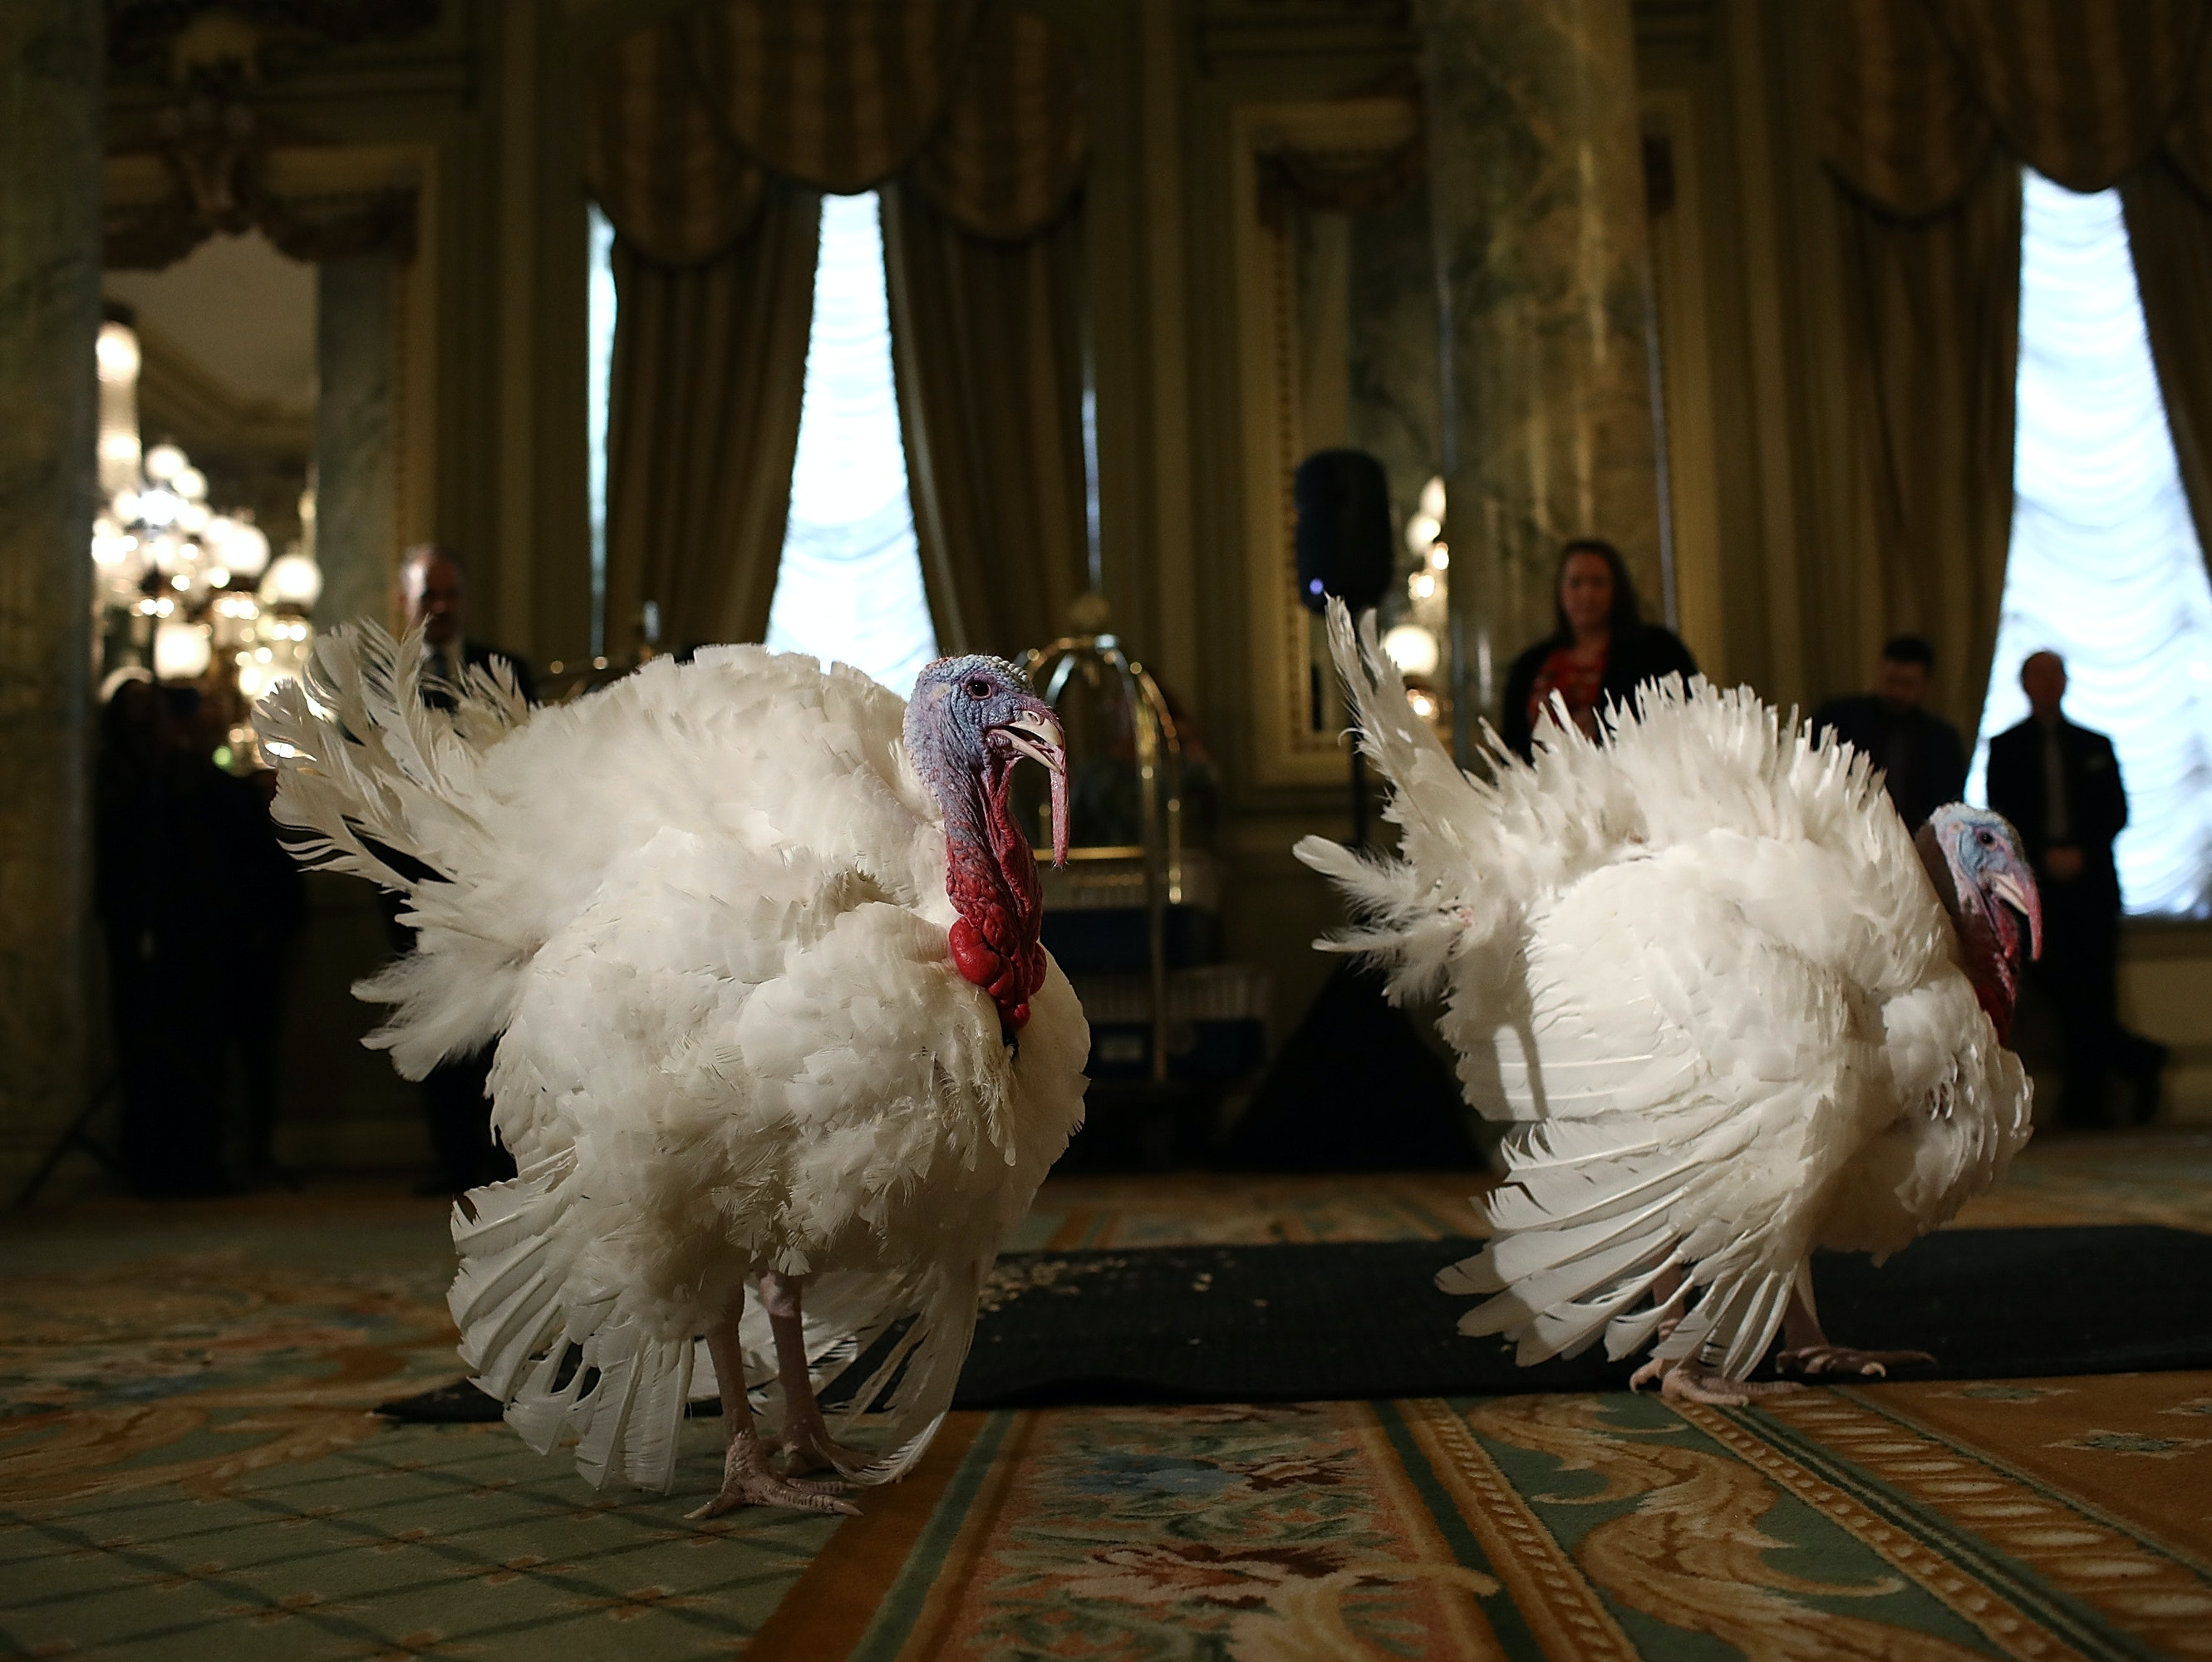 Two White House turkeys prepare to be pardoned before the inevitable.